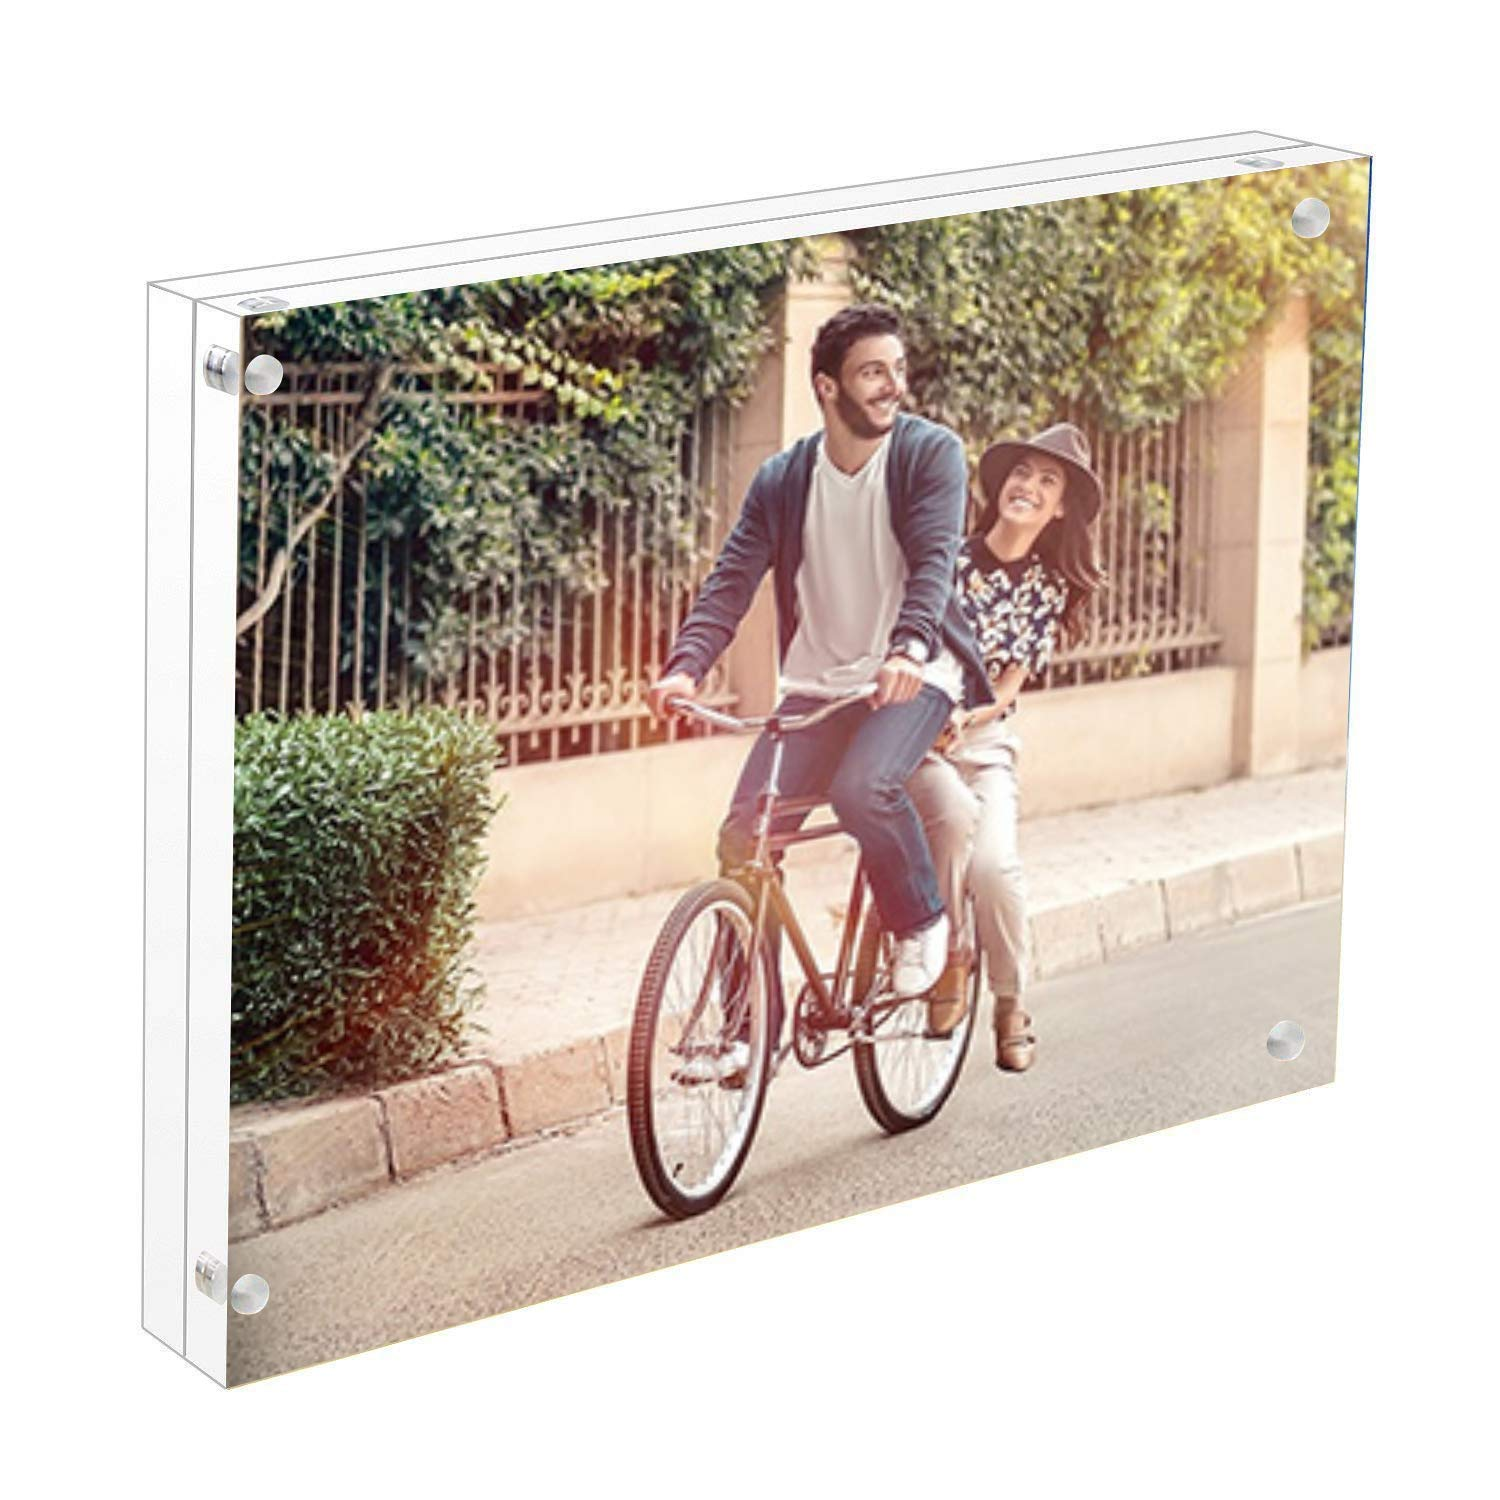 Cq acrylic 8x10 Acrylic Frame, Magnetic Picture Frames, Clear, 10 + 10MM Thickness Stand in Desk/Table,Pack of 1 by Cq acrylic